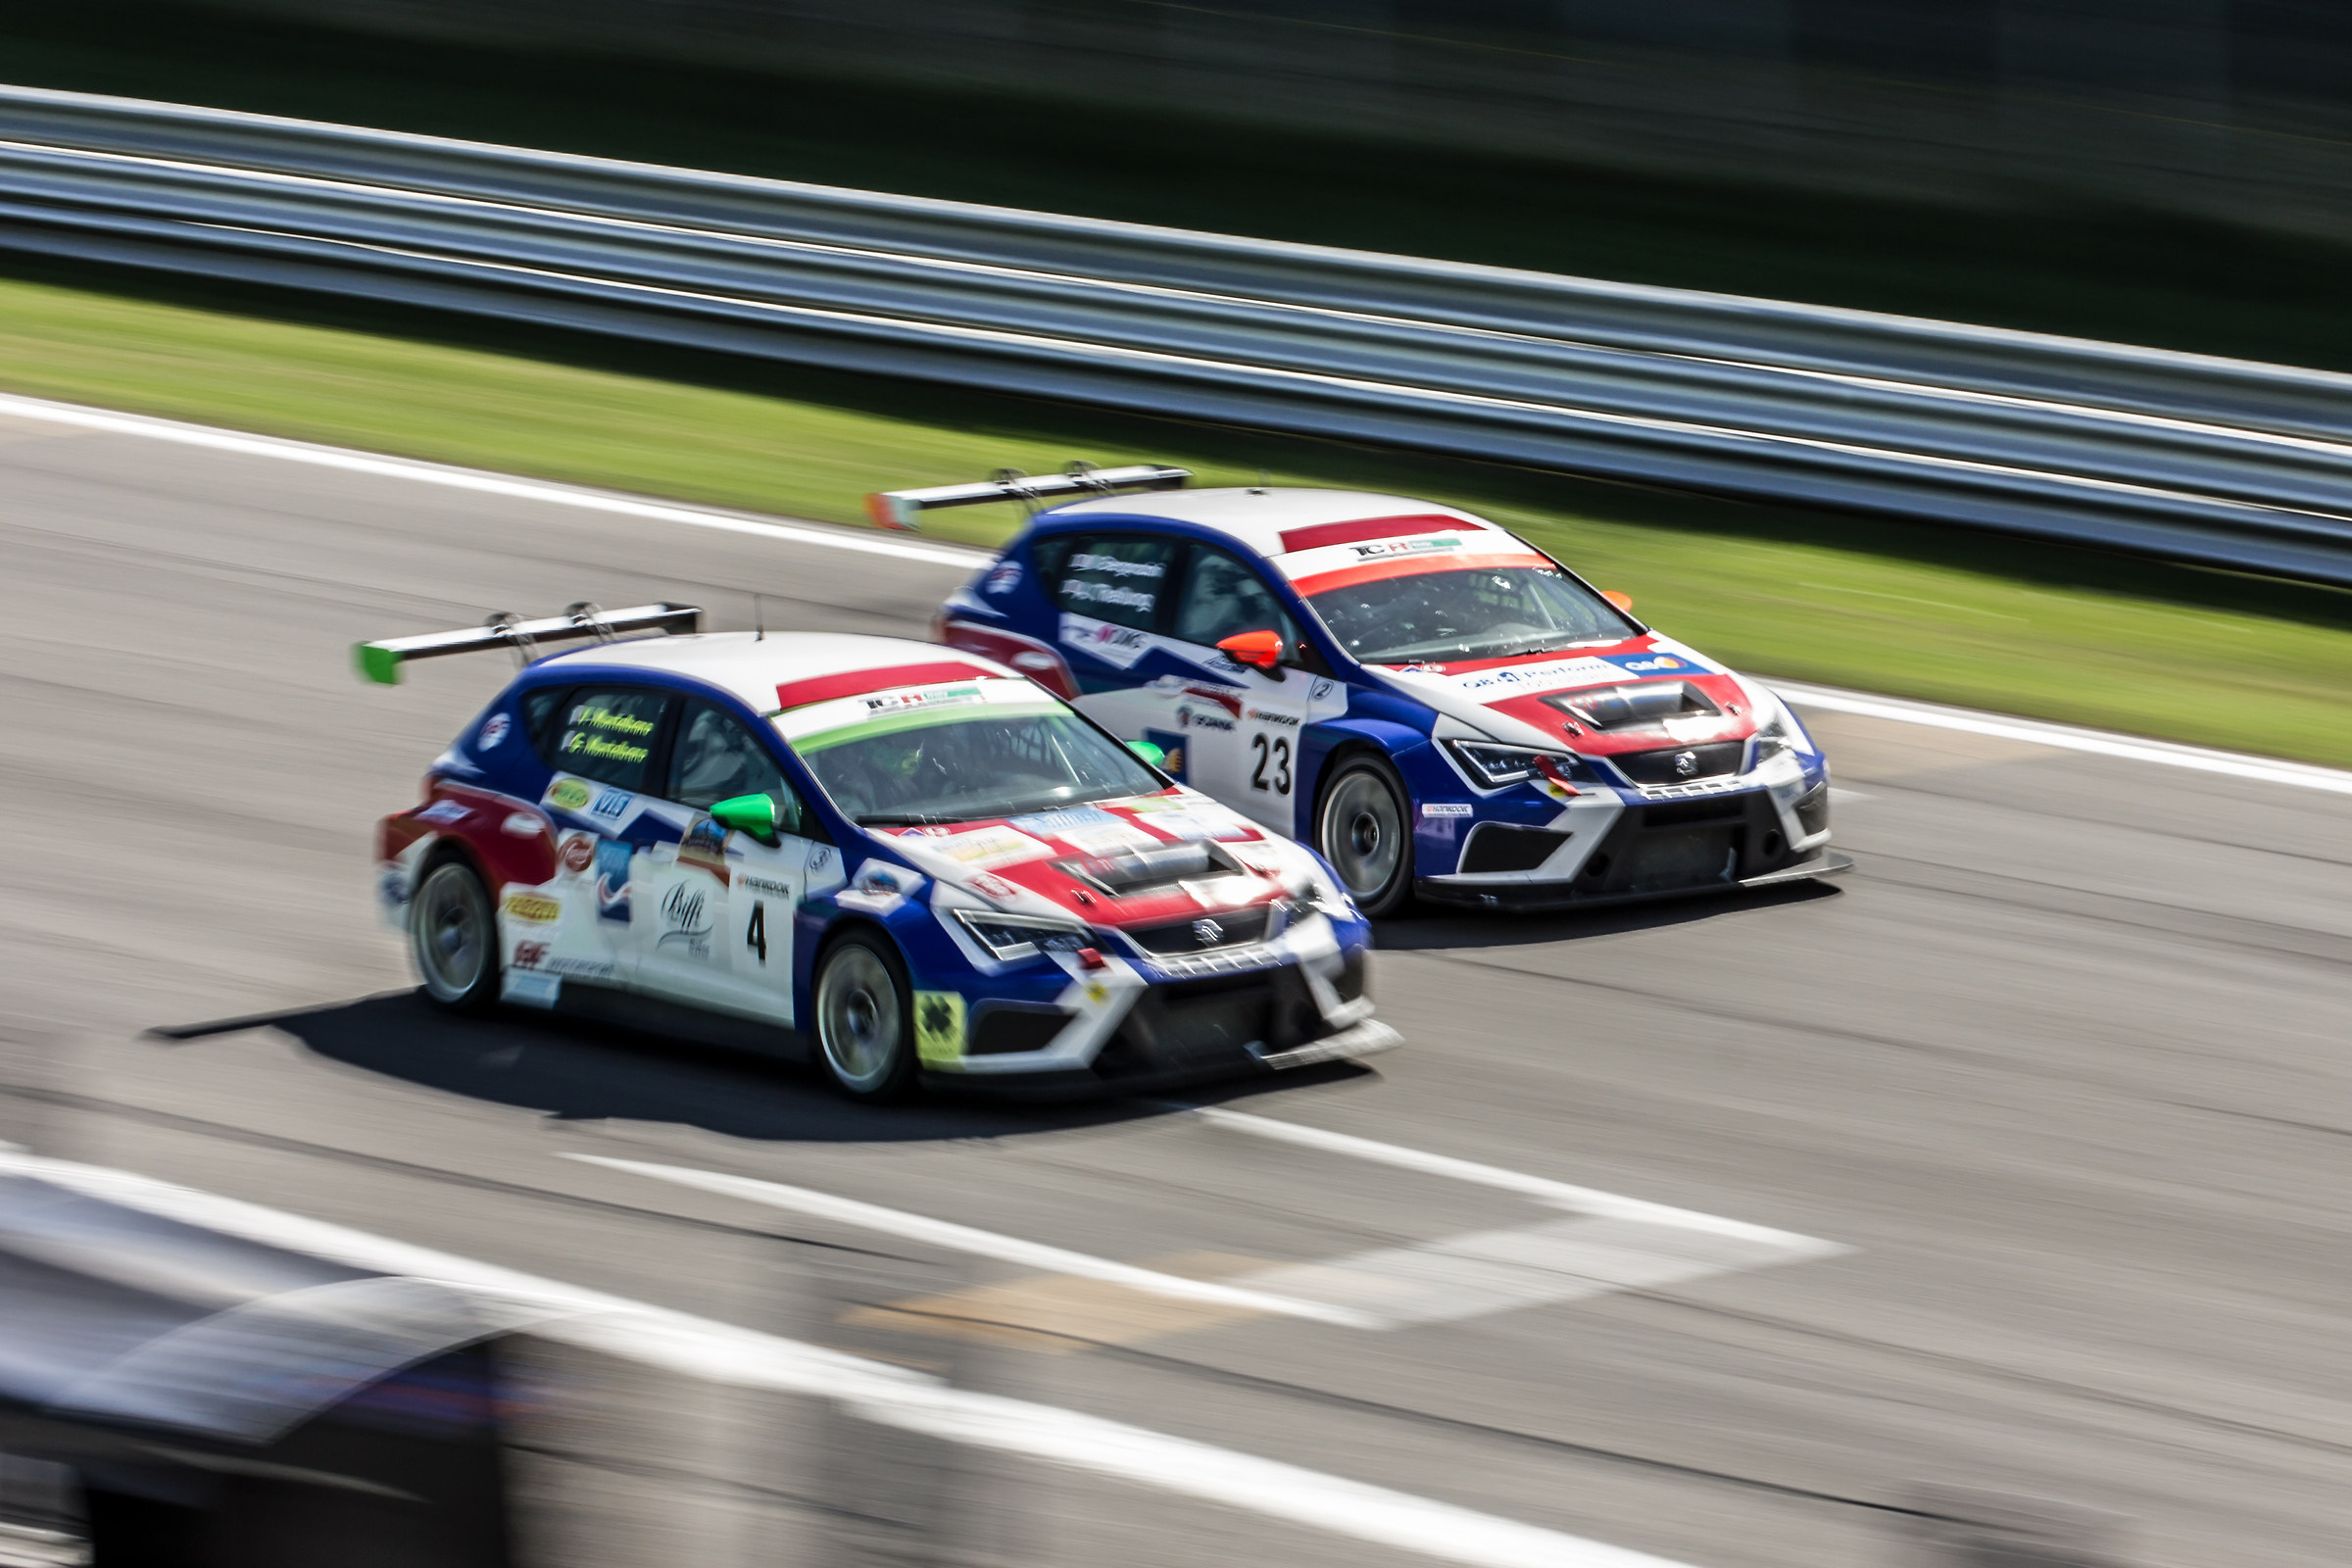 Overtaking the Monza Straight to TCR Italy...